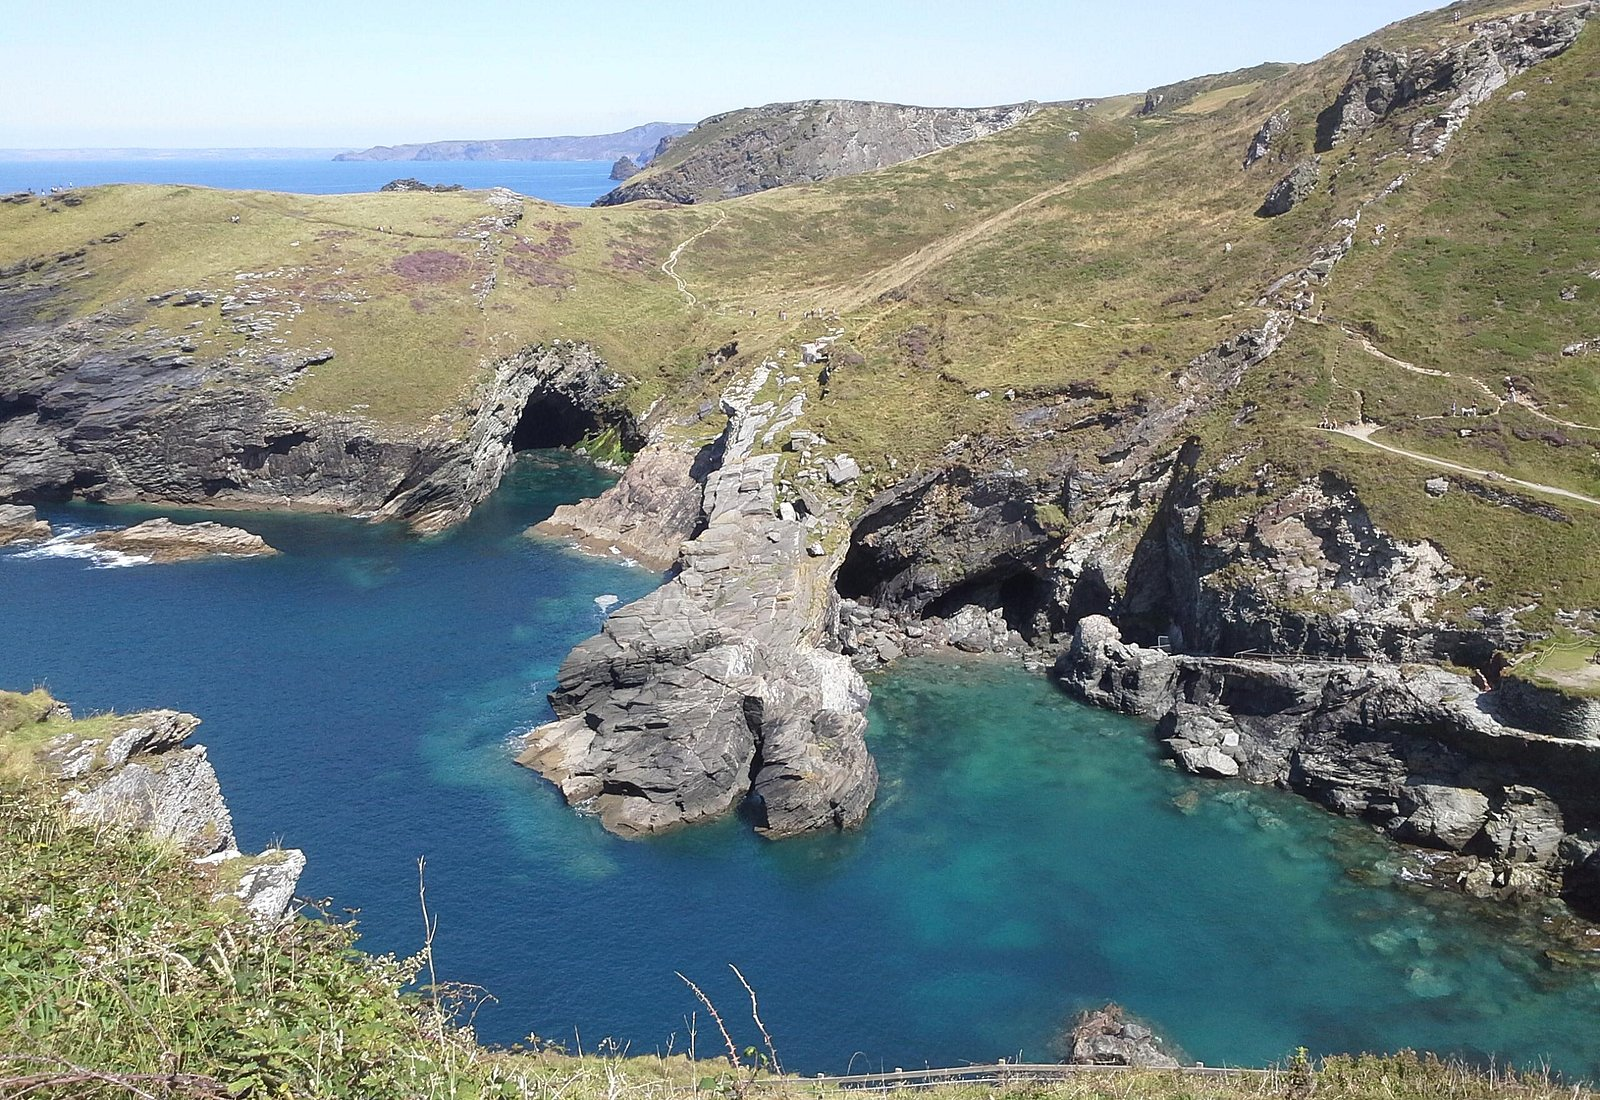 View of the bay and caves from Tintagel castle